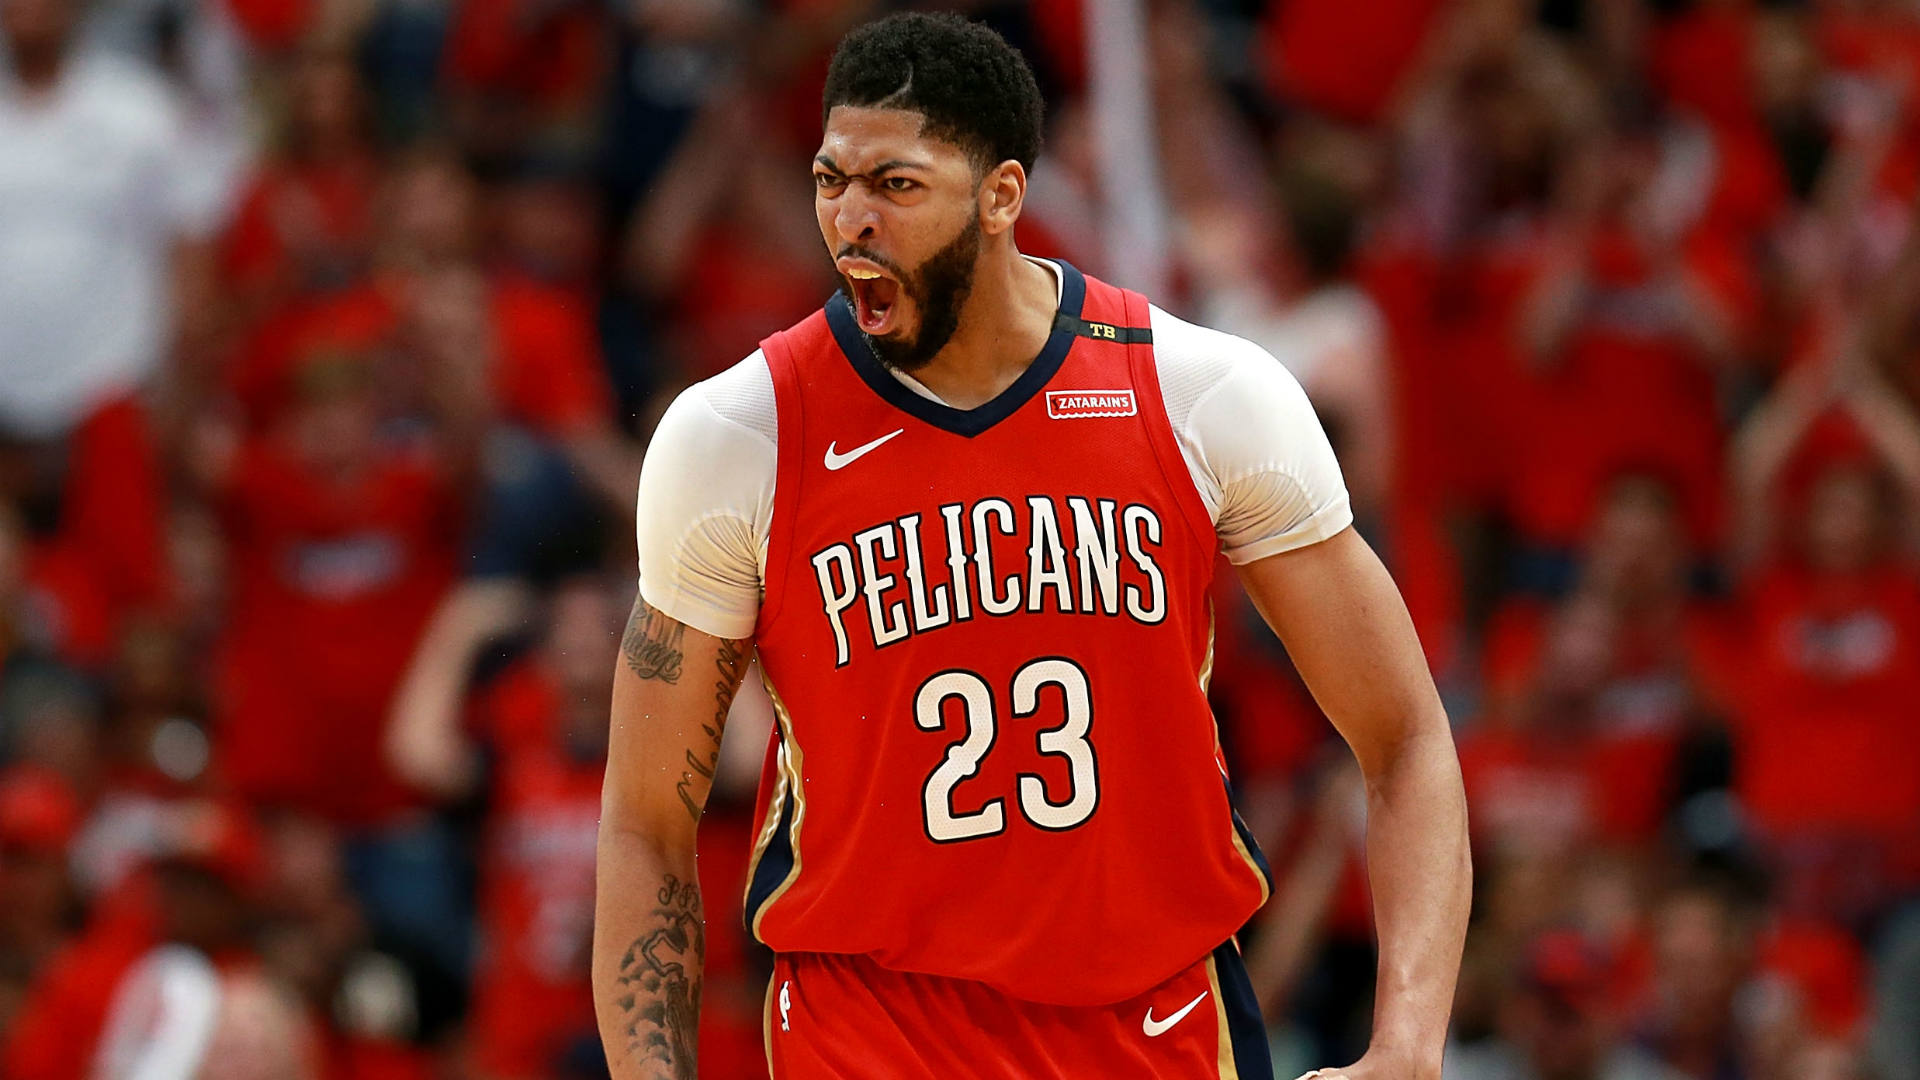 3a1ec70fd Why Pelicans star Anthony Davis will win 2018-19 NBA scoring title